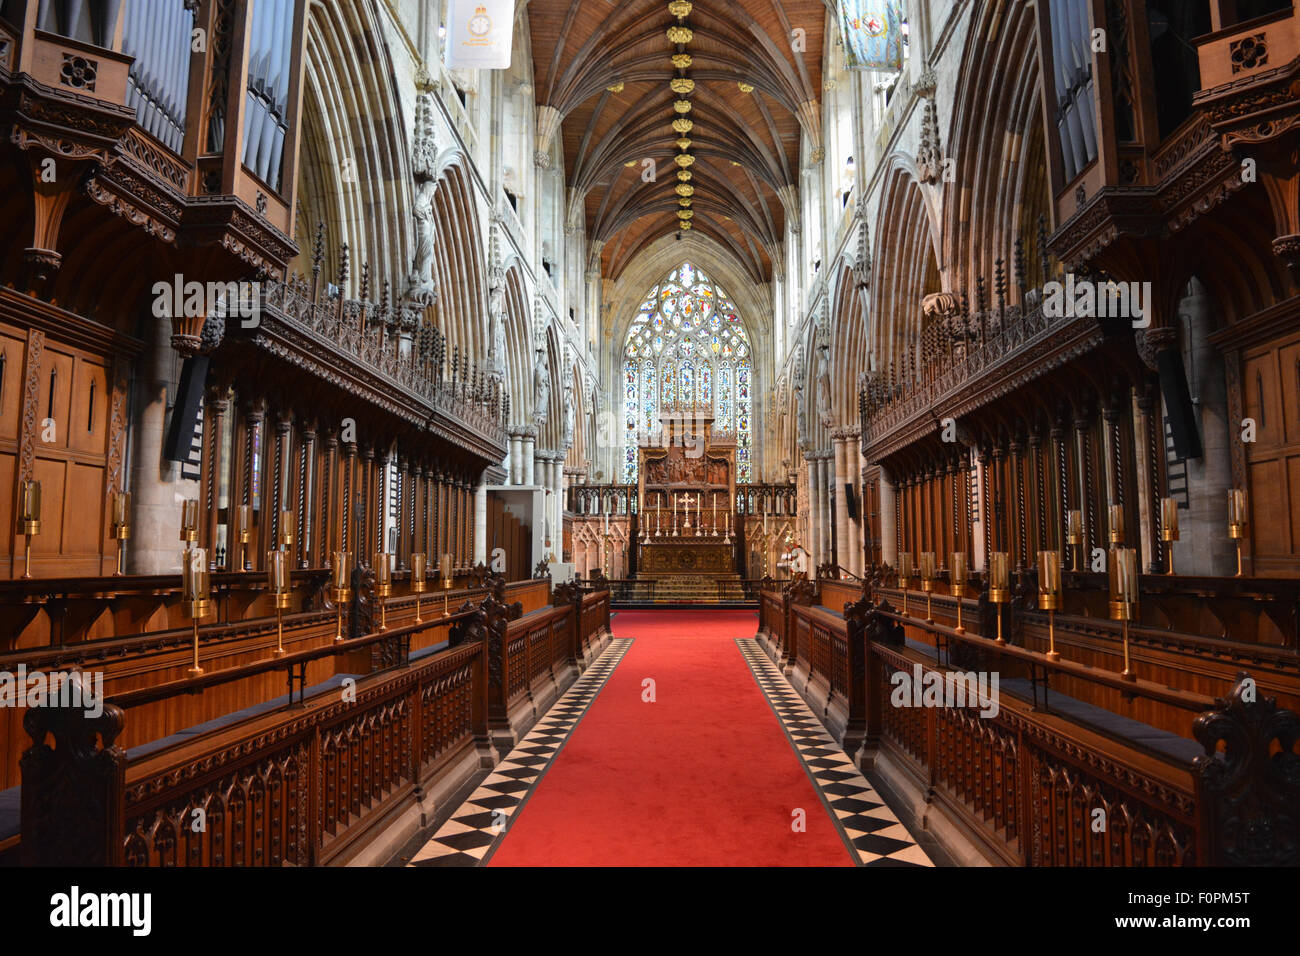 Selby Abbey, founded in 1069, now an Anglican parish church.  Interior, looking towards altar from choir stalls. - Stock Image